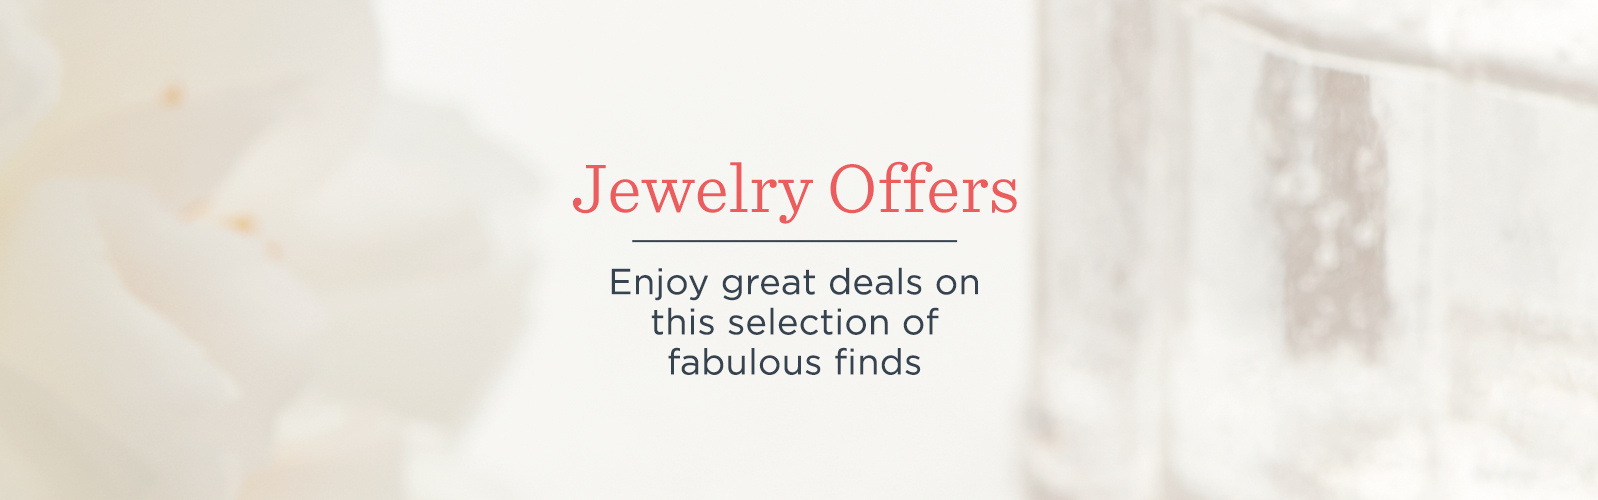 Jewelry Offers. Enjoy great deals on this selection of fabulous finds